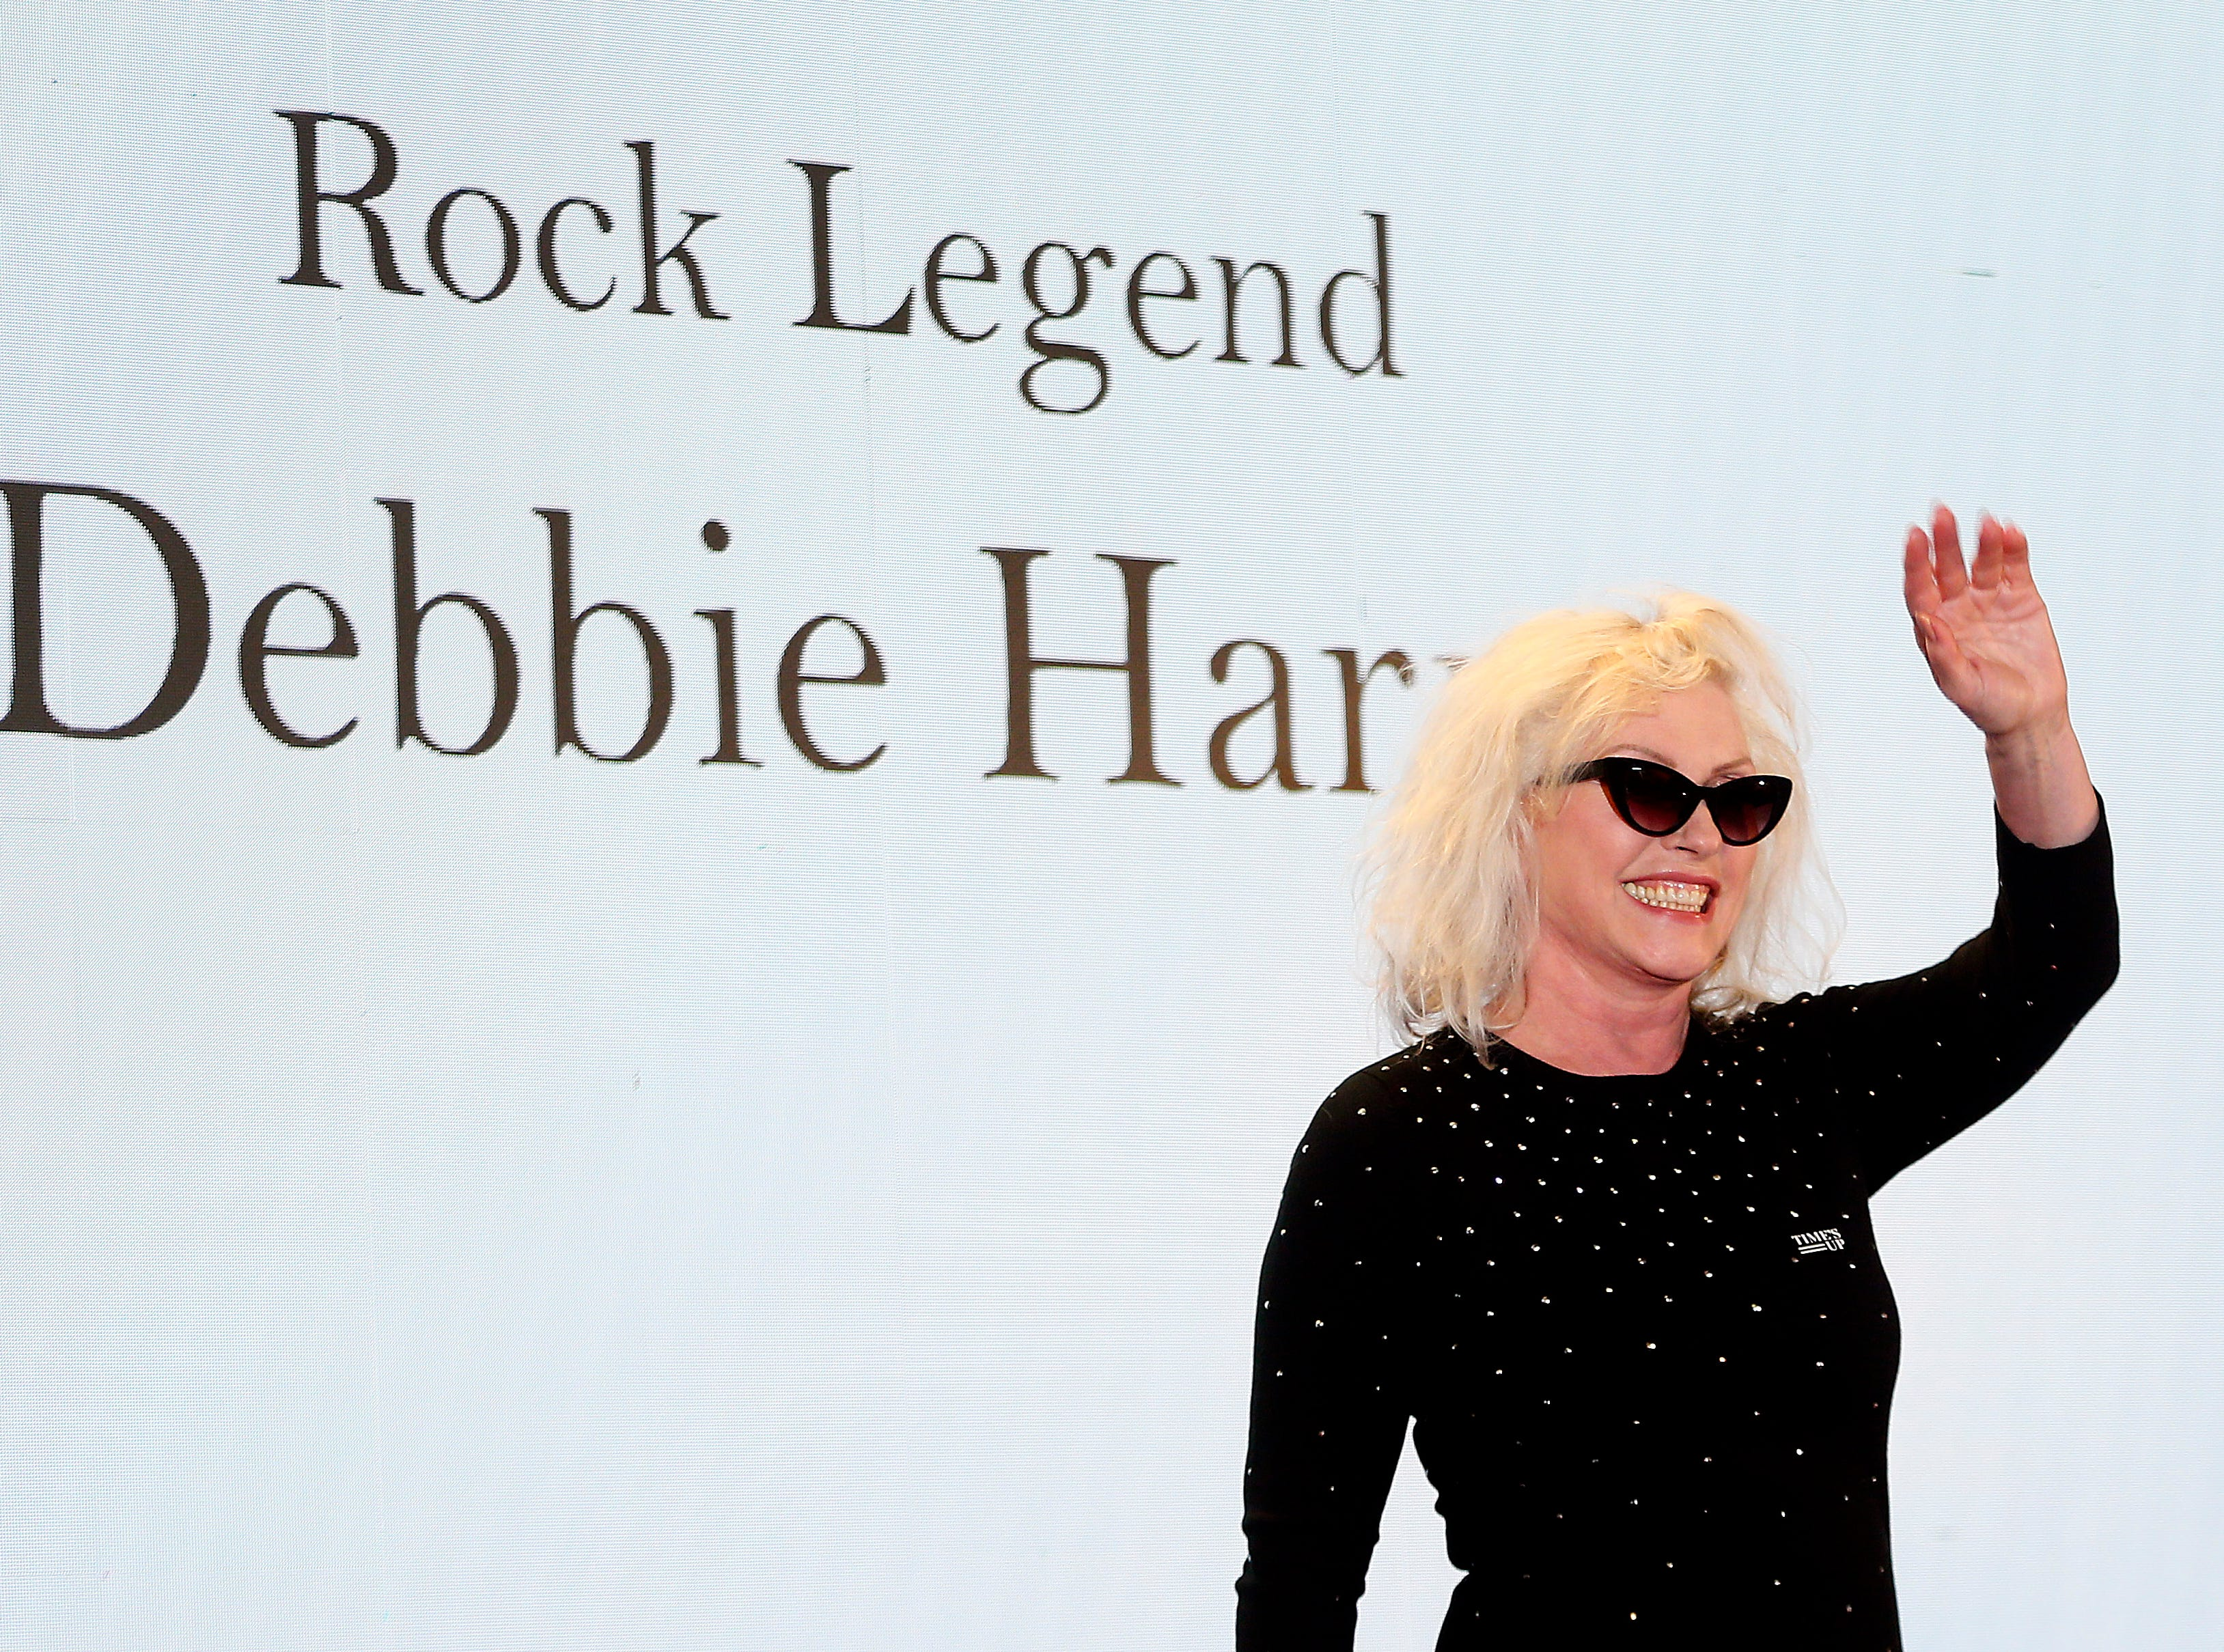 Singer-songwriter Debbie Harry of the band Blondie walks the red carpet at the 10th Anniversary Induction Ceremony of the New Jersey Hall of Fame at the Paramount Theater in Convention Hall, Asbury Park. May 6, 2018. Asbury Park, NJ  May 6, 2018. Asbury Park, NJ